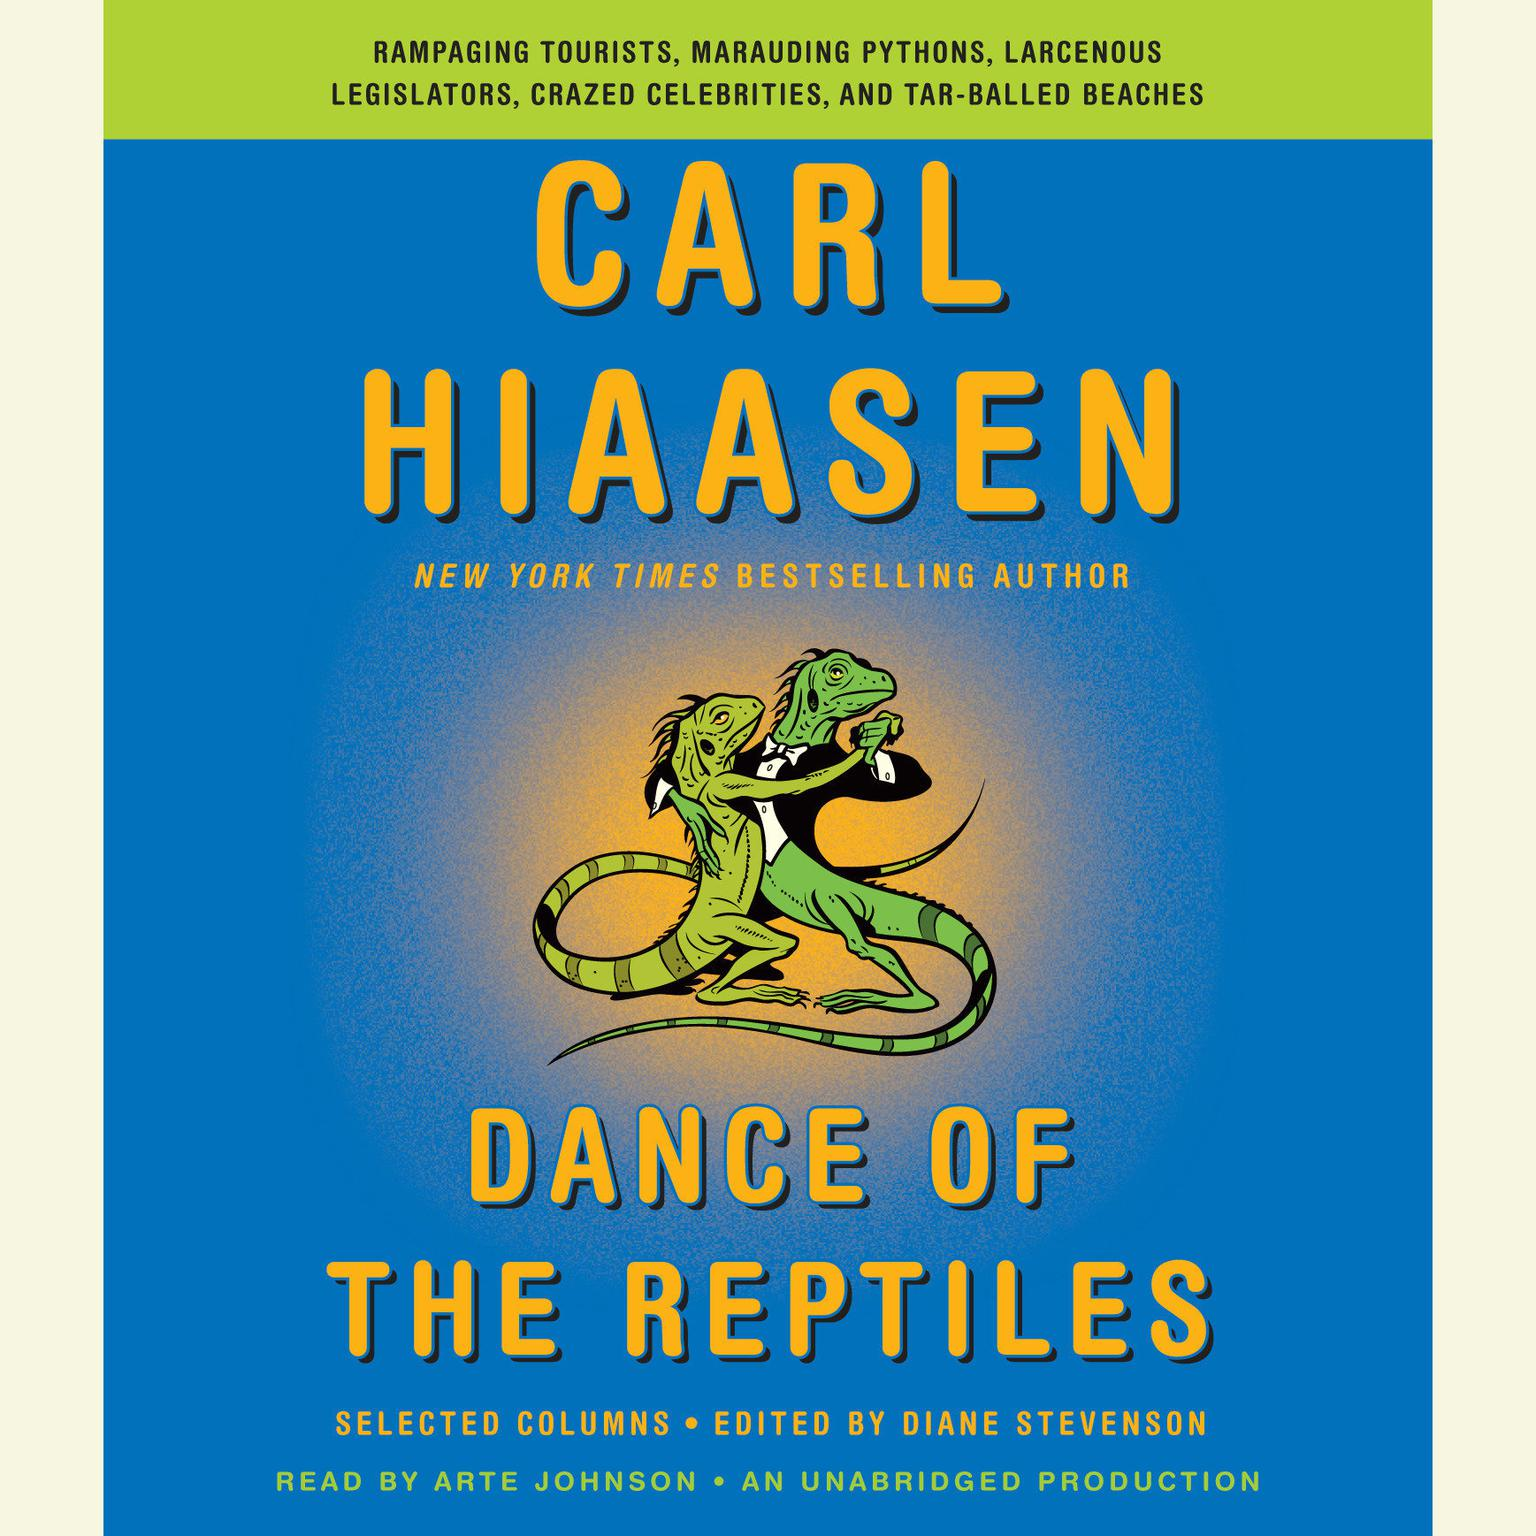 Printable Dance of the Reptiles: Rampaging Tourists, Maurauding Pythons, Larcenous Legislators, Crazed Celebrities, and Tar-Balled Beaches: Selected Columns Audiobook Cover Art